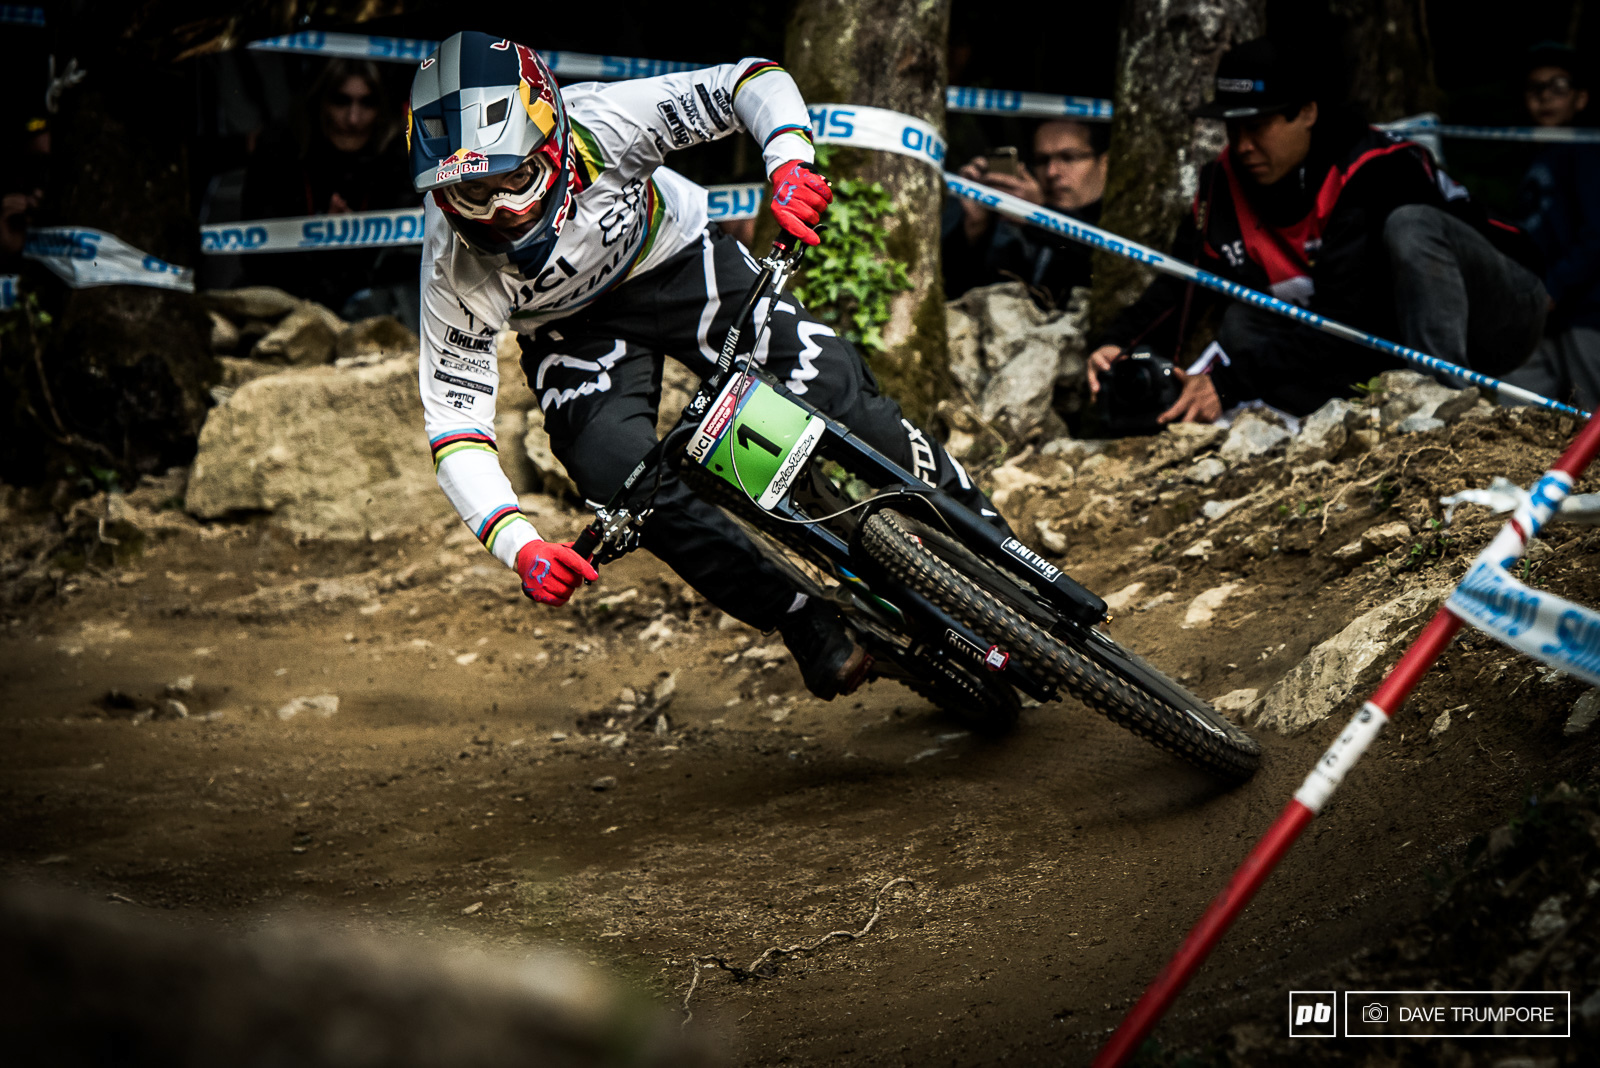 Finn Iles rebounded from a slow qualifier to grab the top spot once again in the junior race.